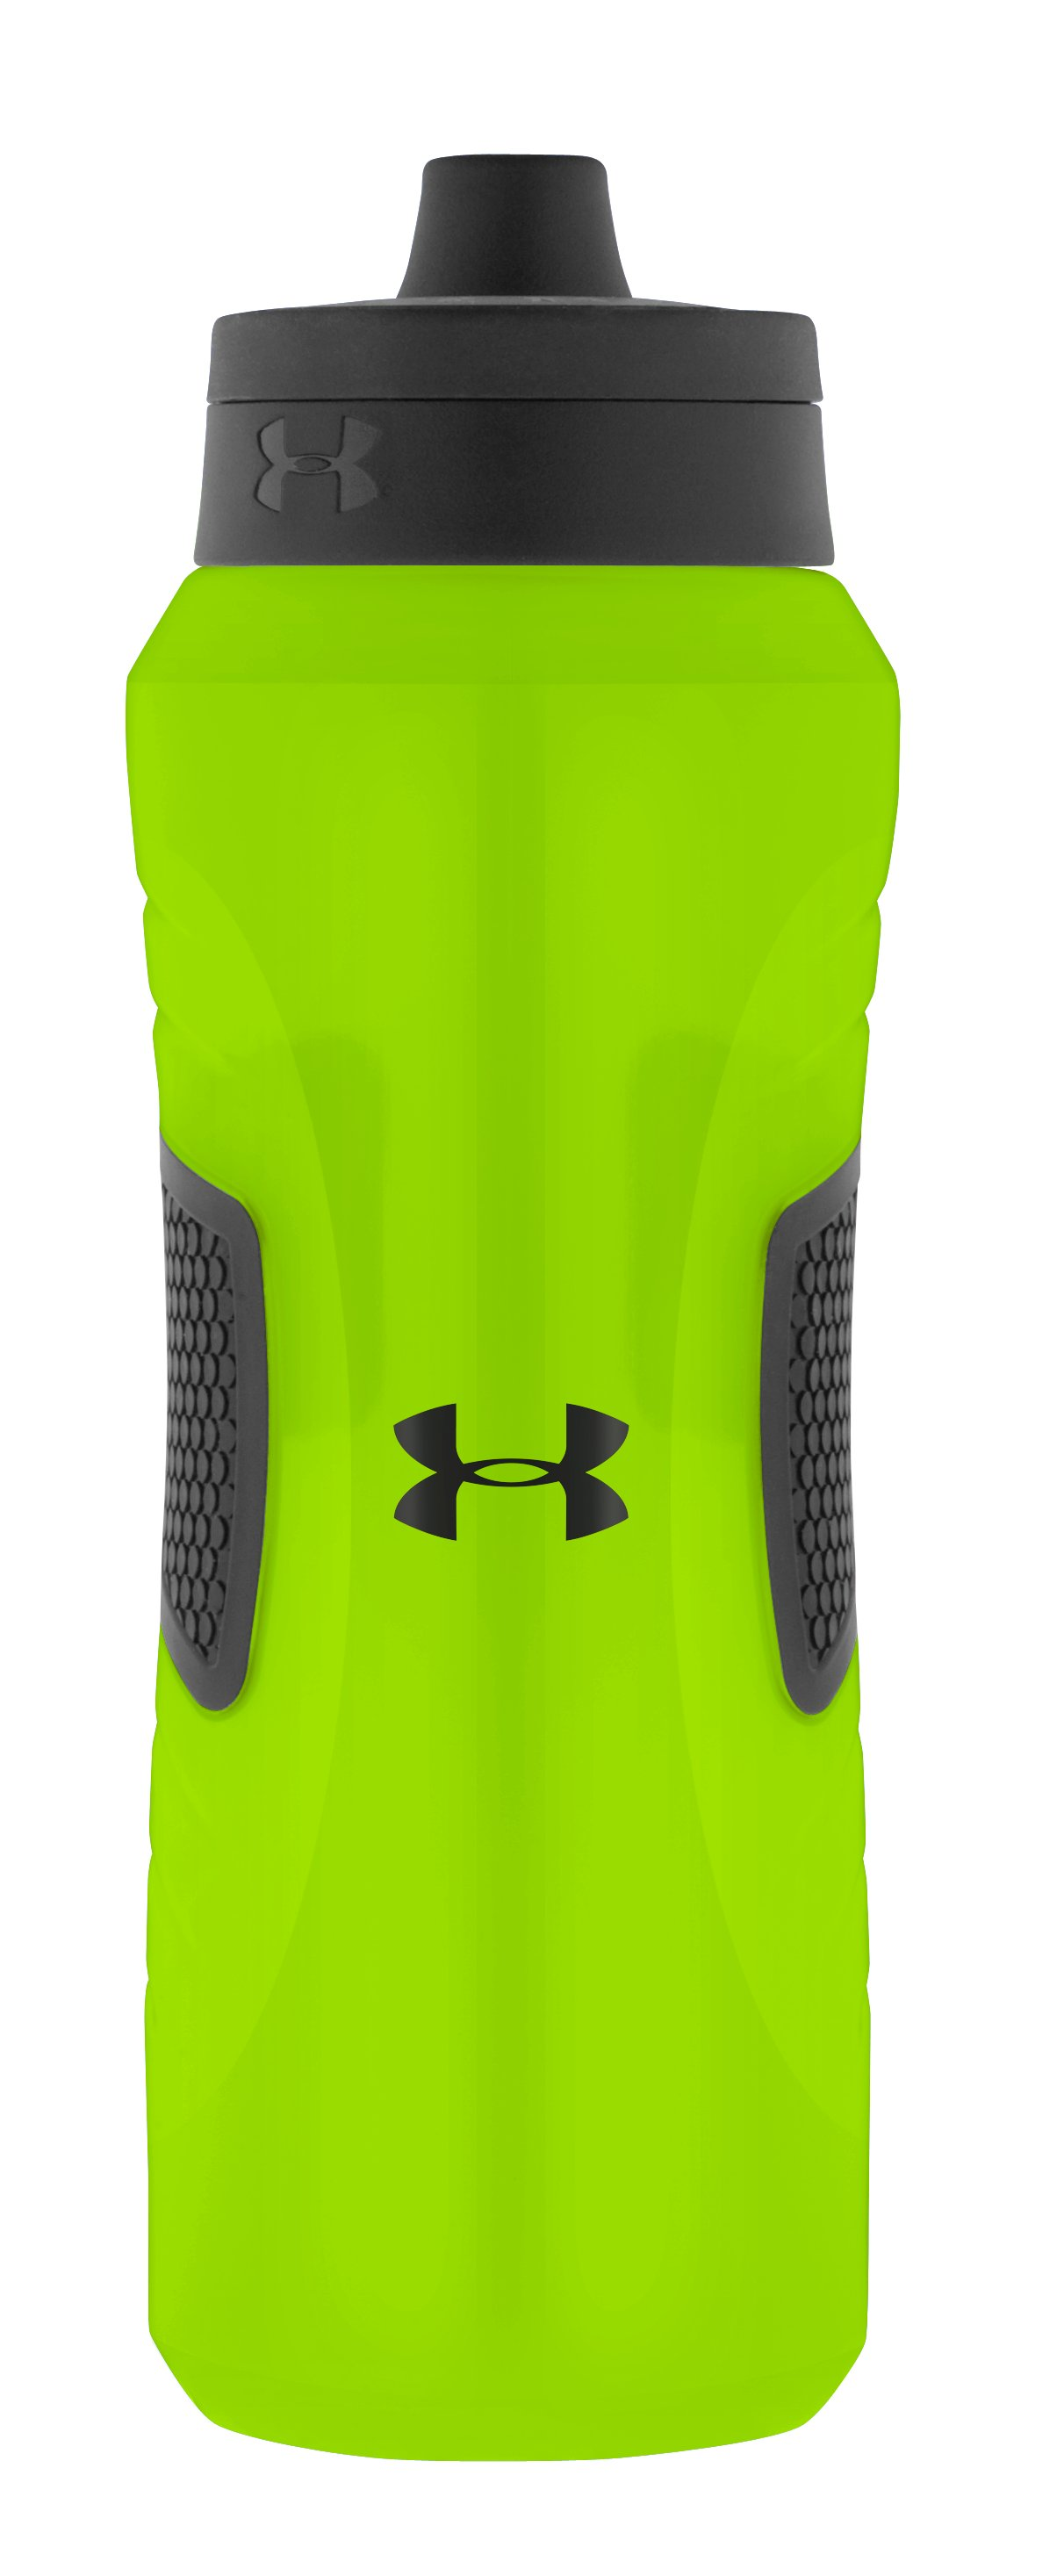 Undeniable 32 oz. Squeezable Water Bottle with Quick Shot Lid 2 Colors $15.00